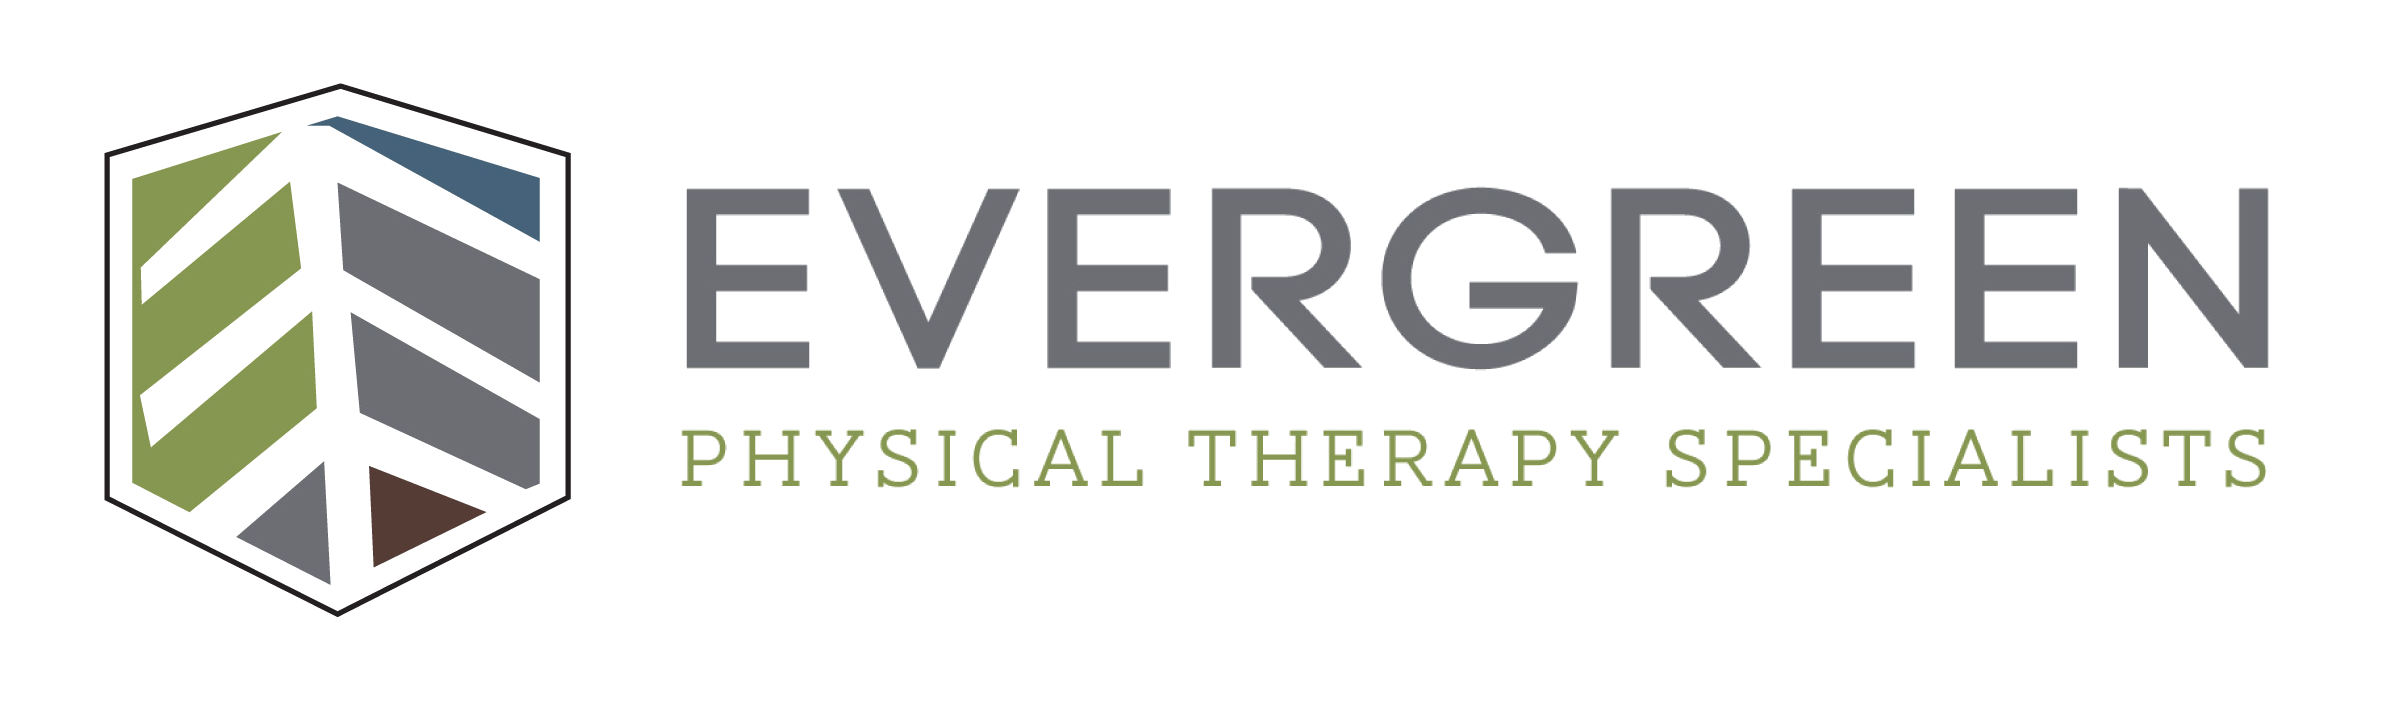 Evergreen Physical Therapy Specialists - David Johnson